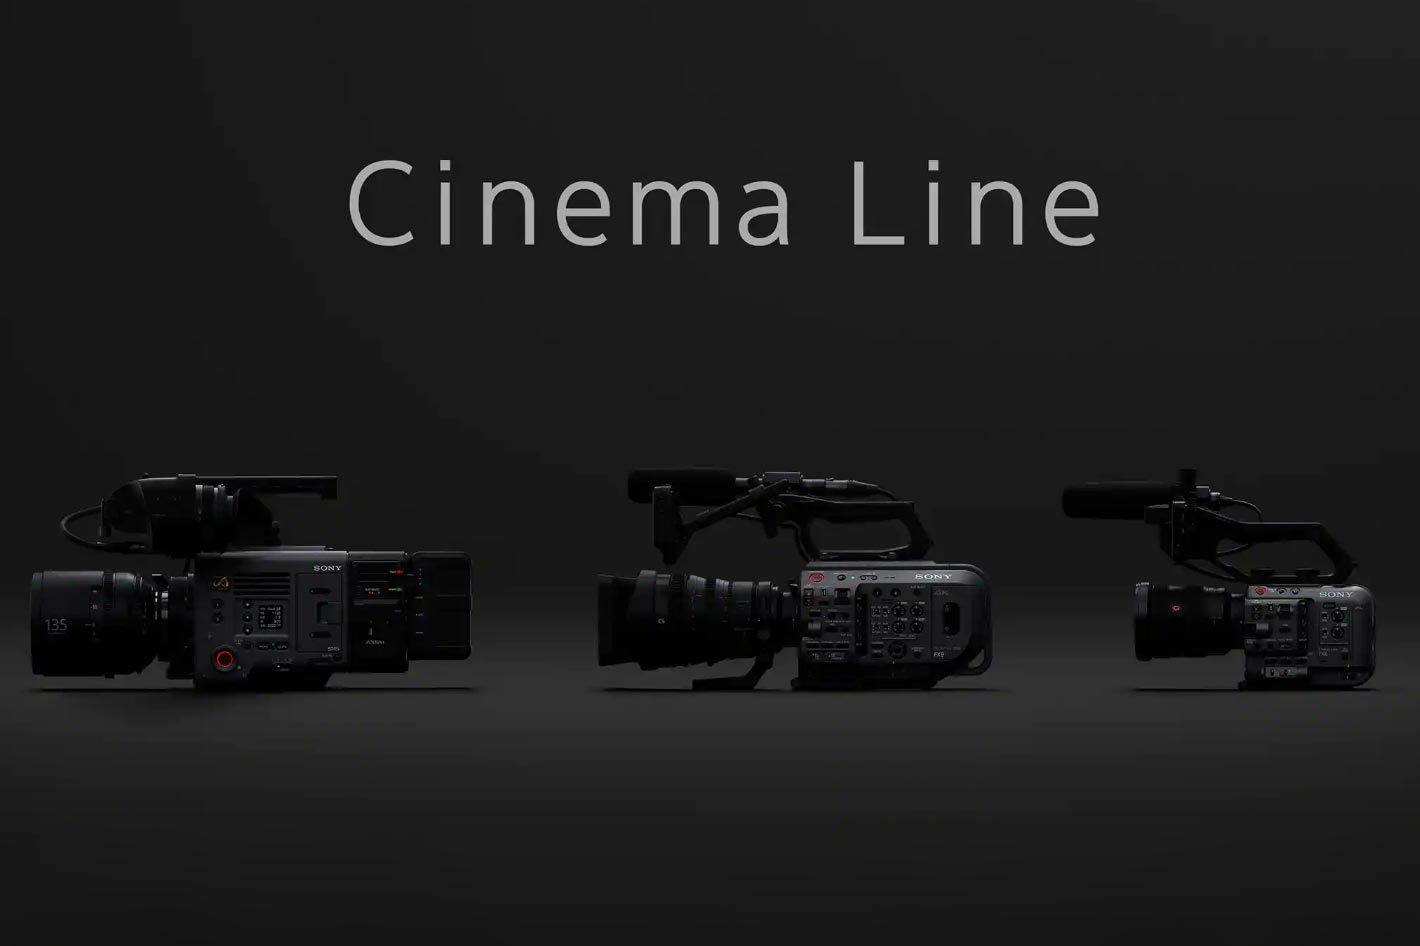 Sony introduces the new Cinema Line and shows FX6